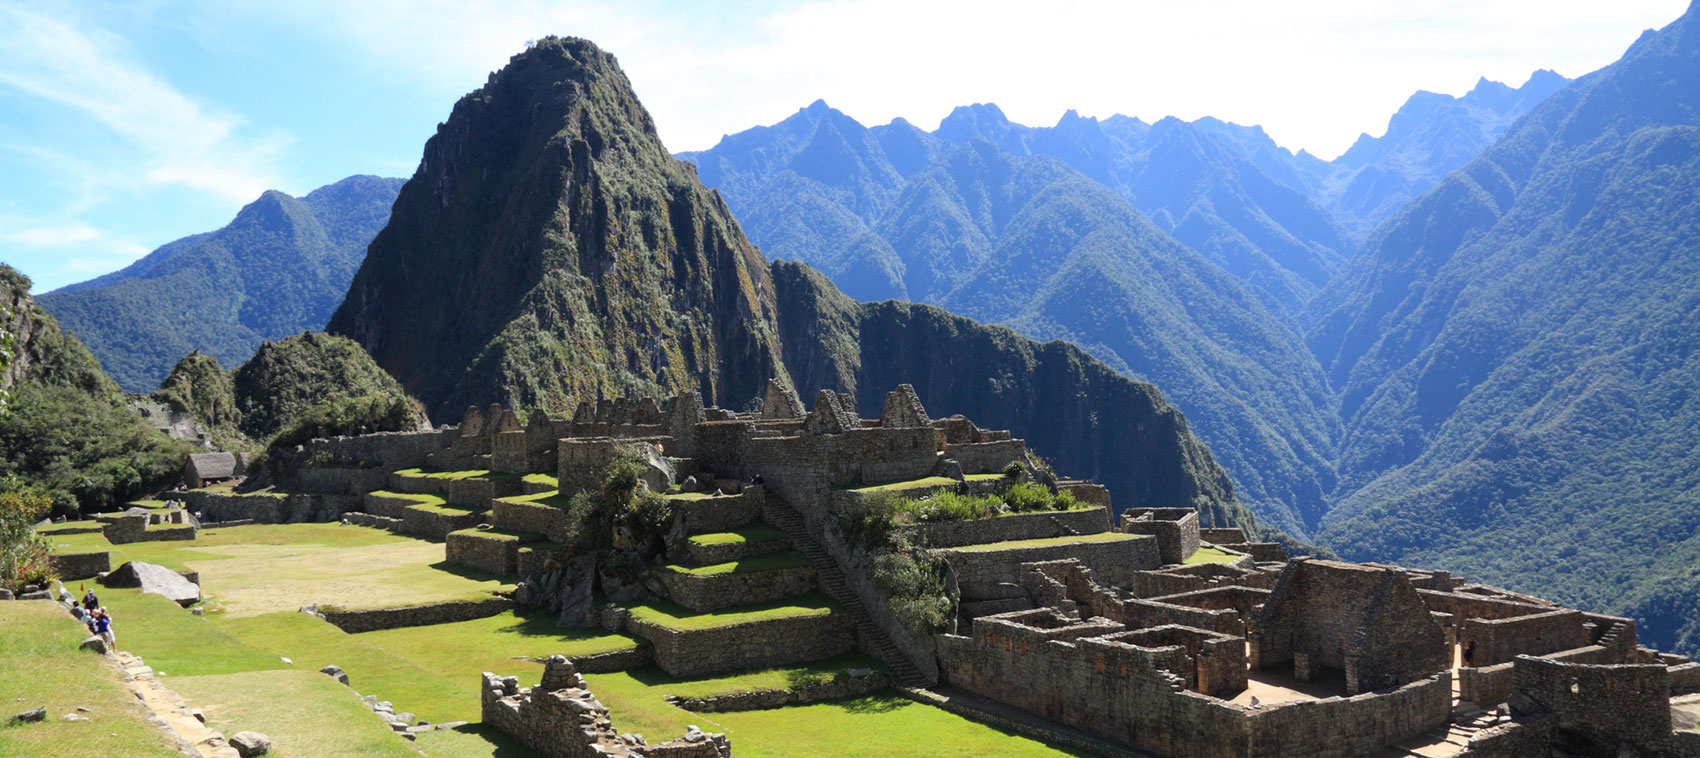 Machu Picchu Challenge - June & August 2022